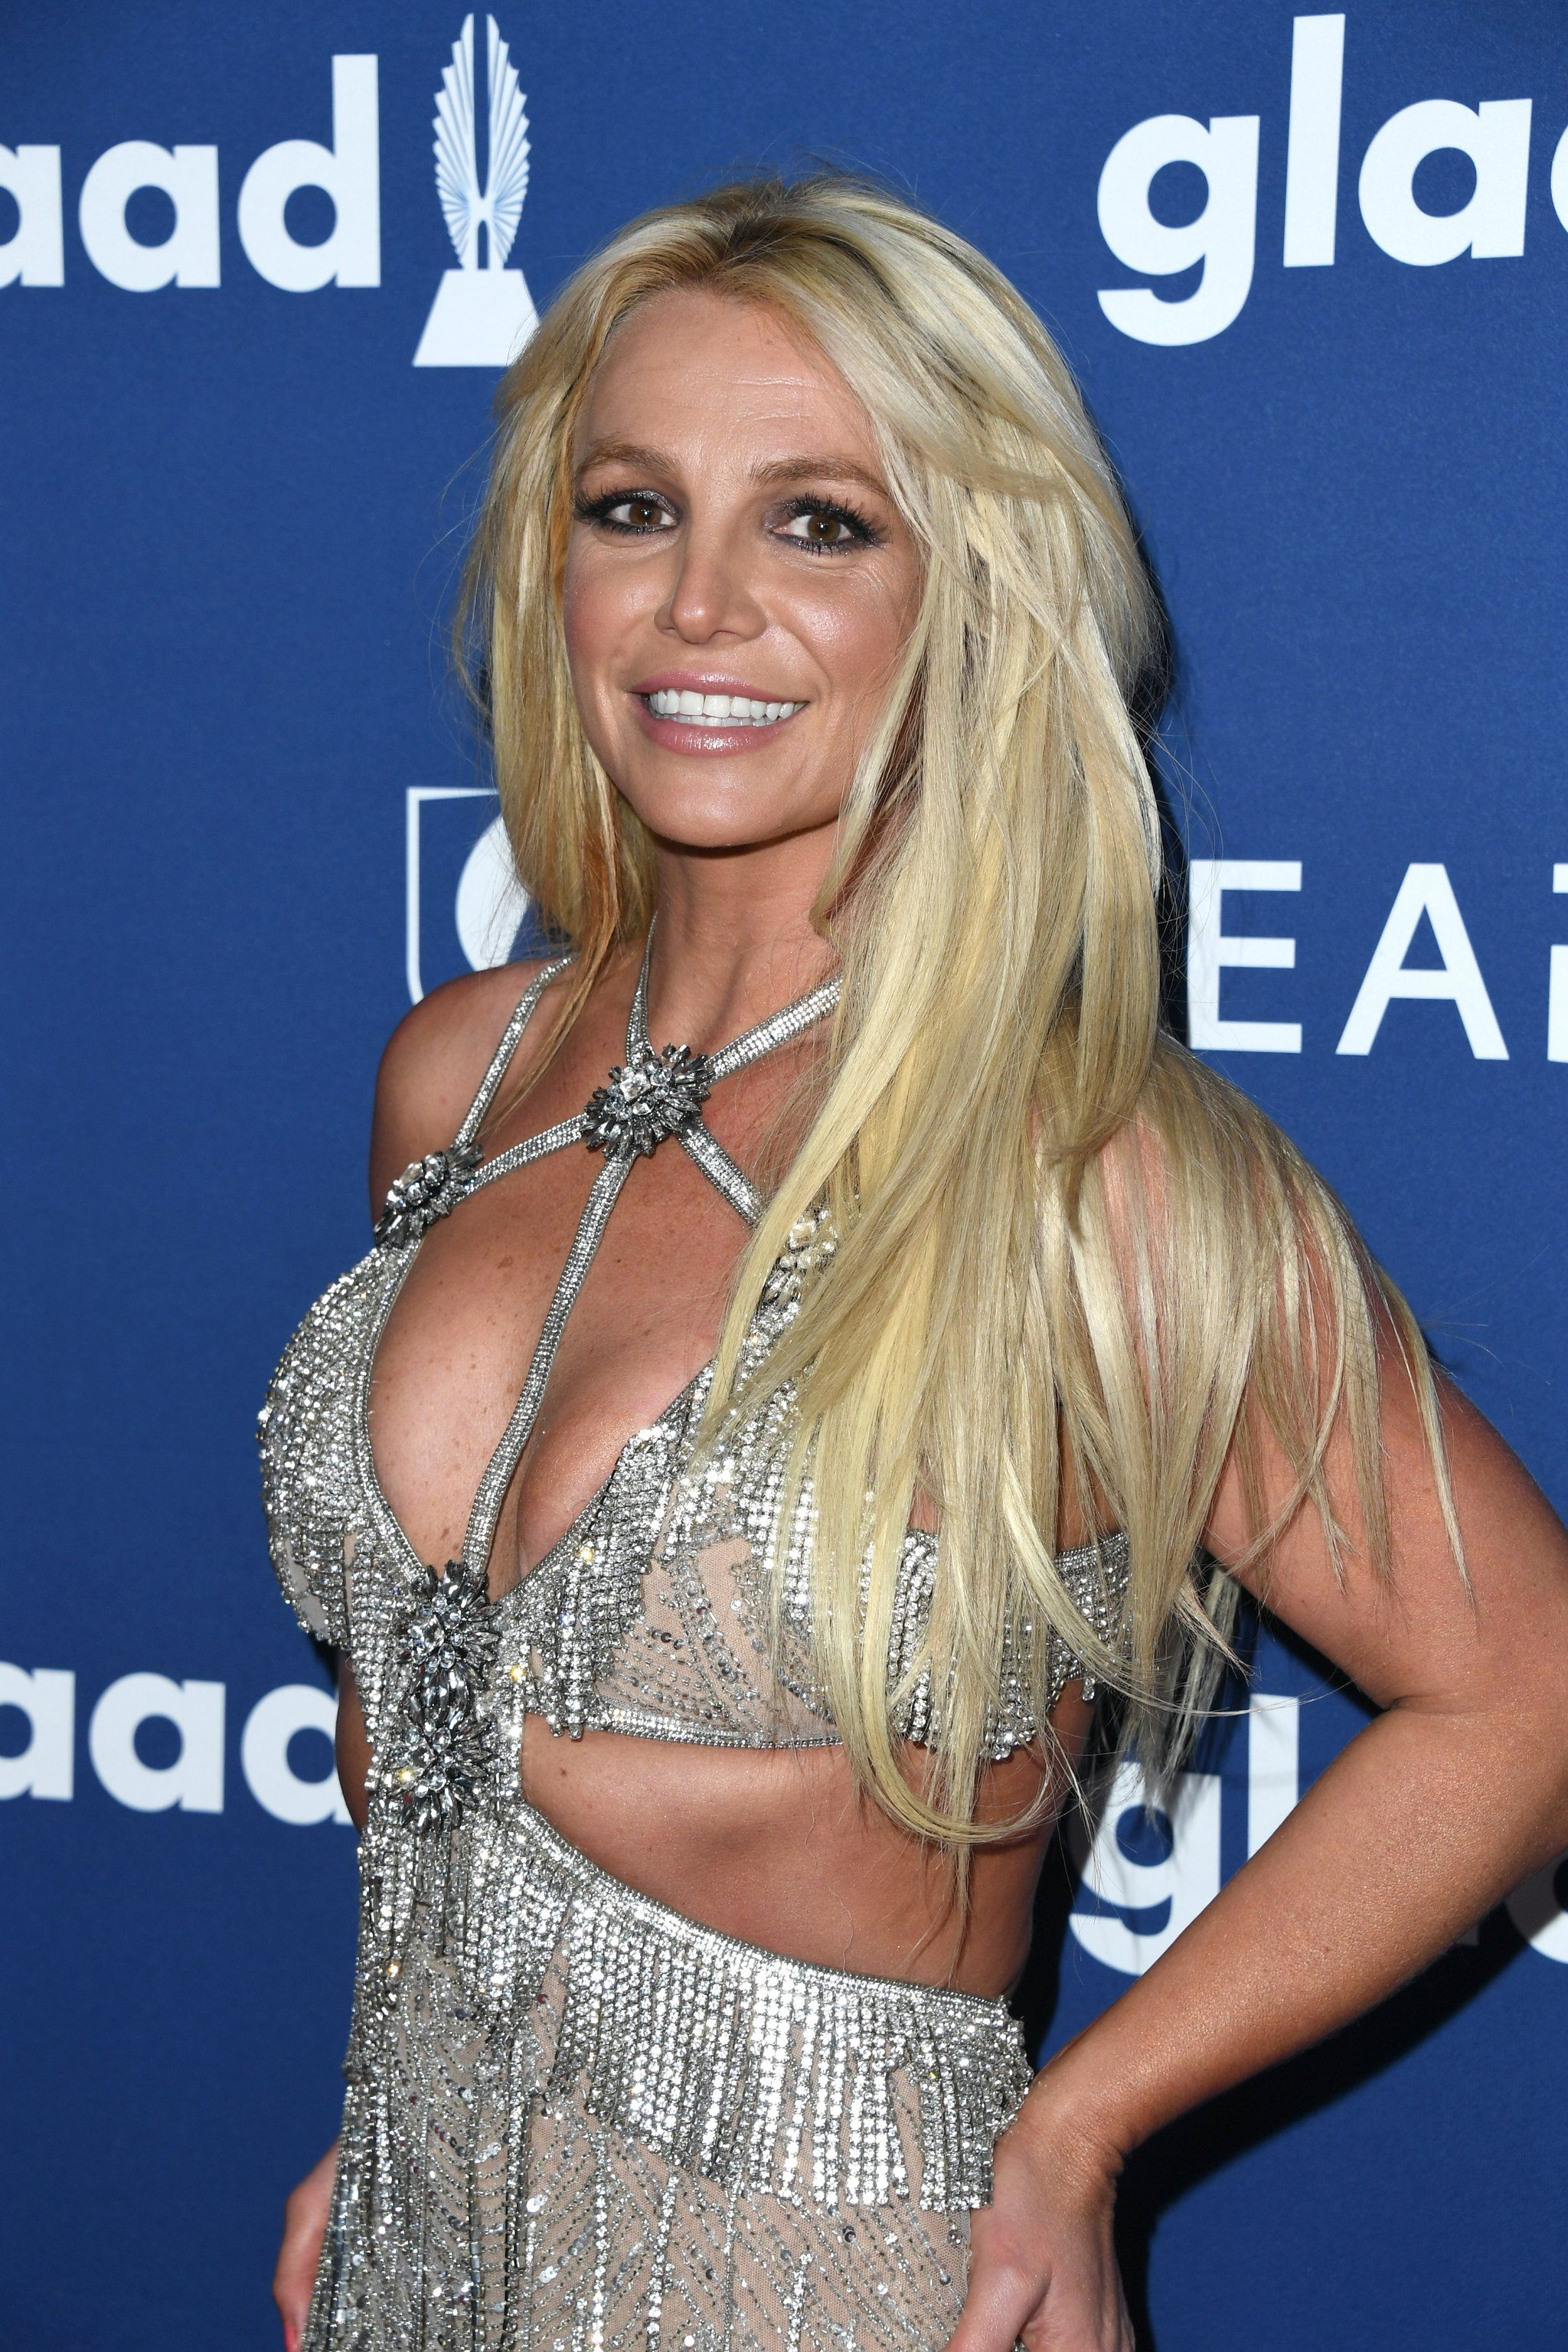 What Does Britney Spears Eat To Stay Fit She Just Shared Her Back